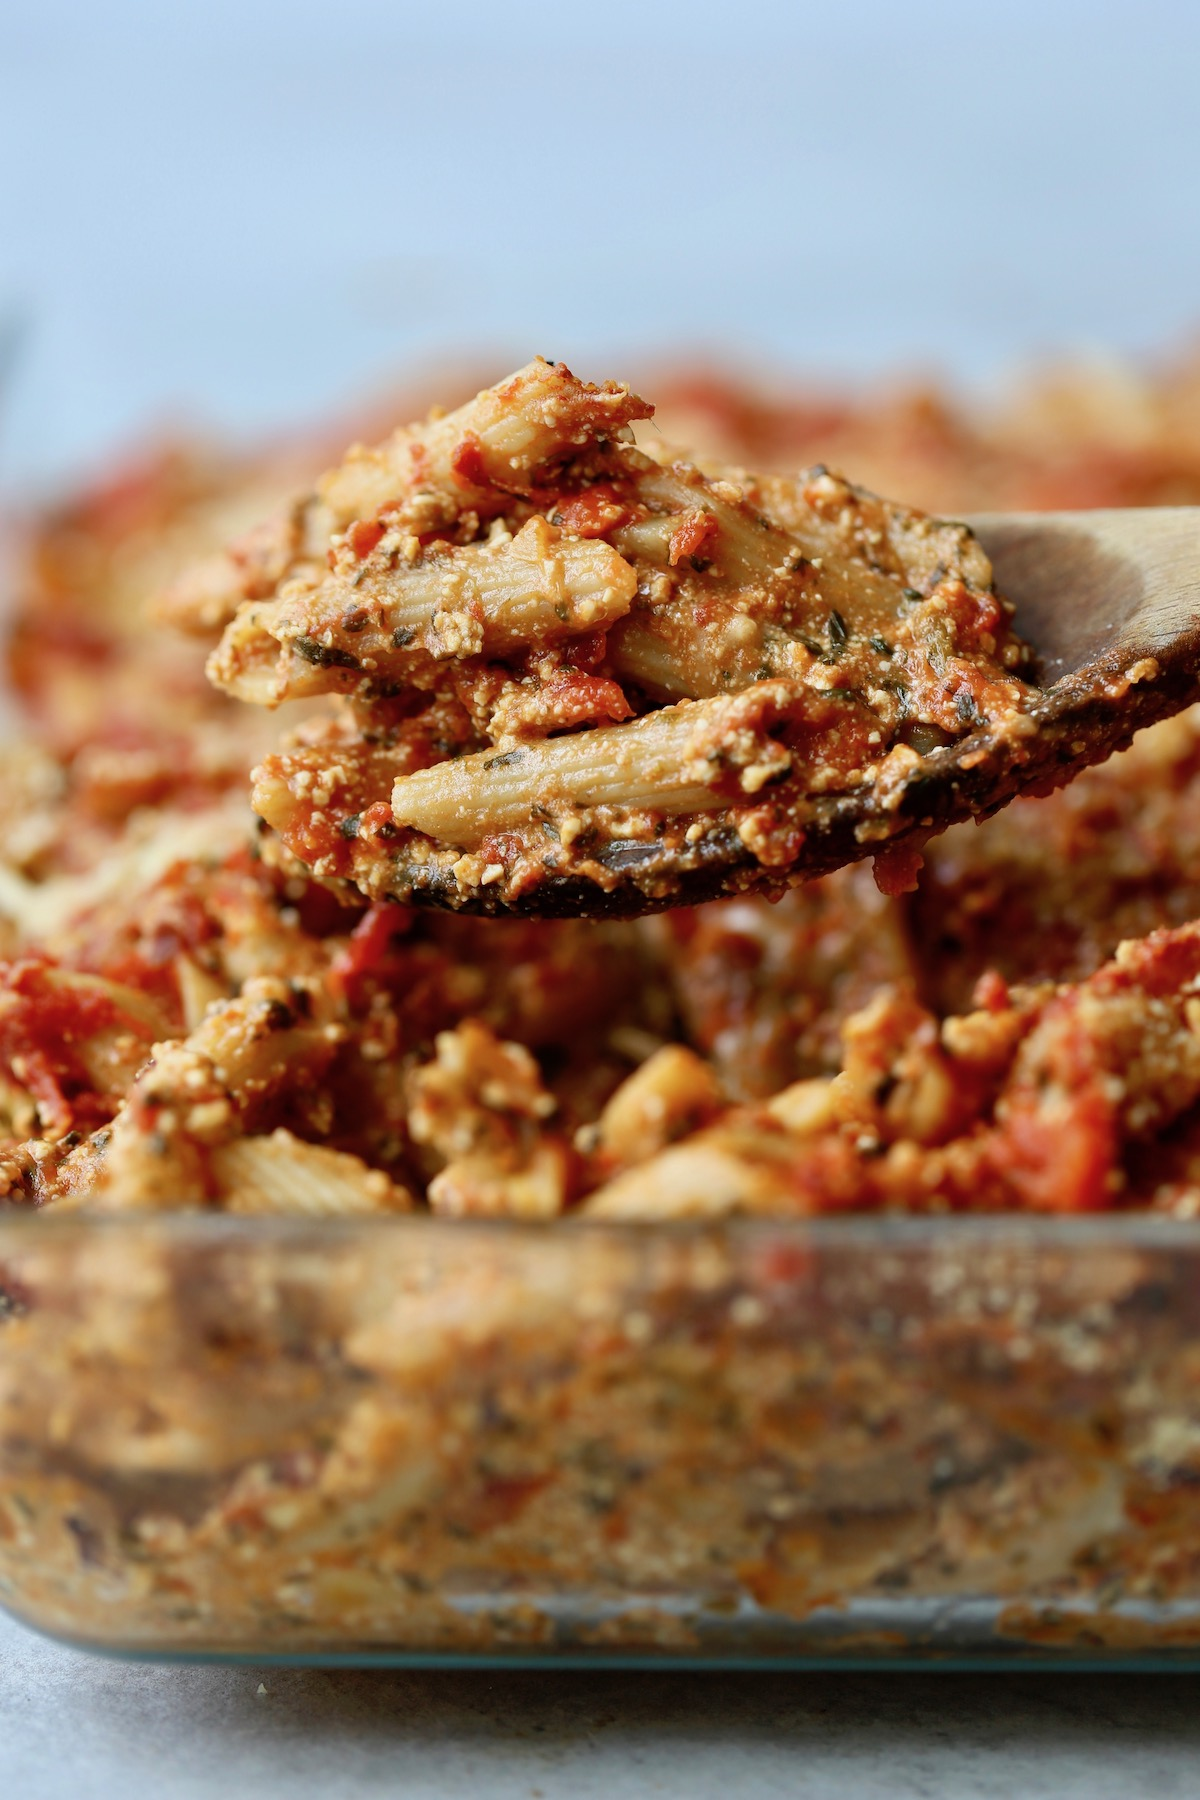 Easy vegan baked ziti with tofu ricotta piled high on a wooden spoon